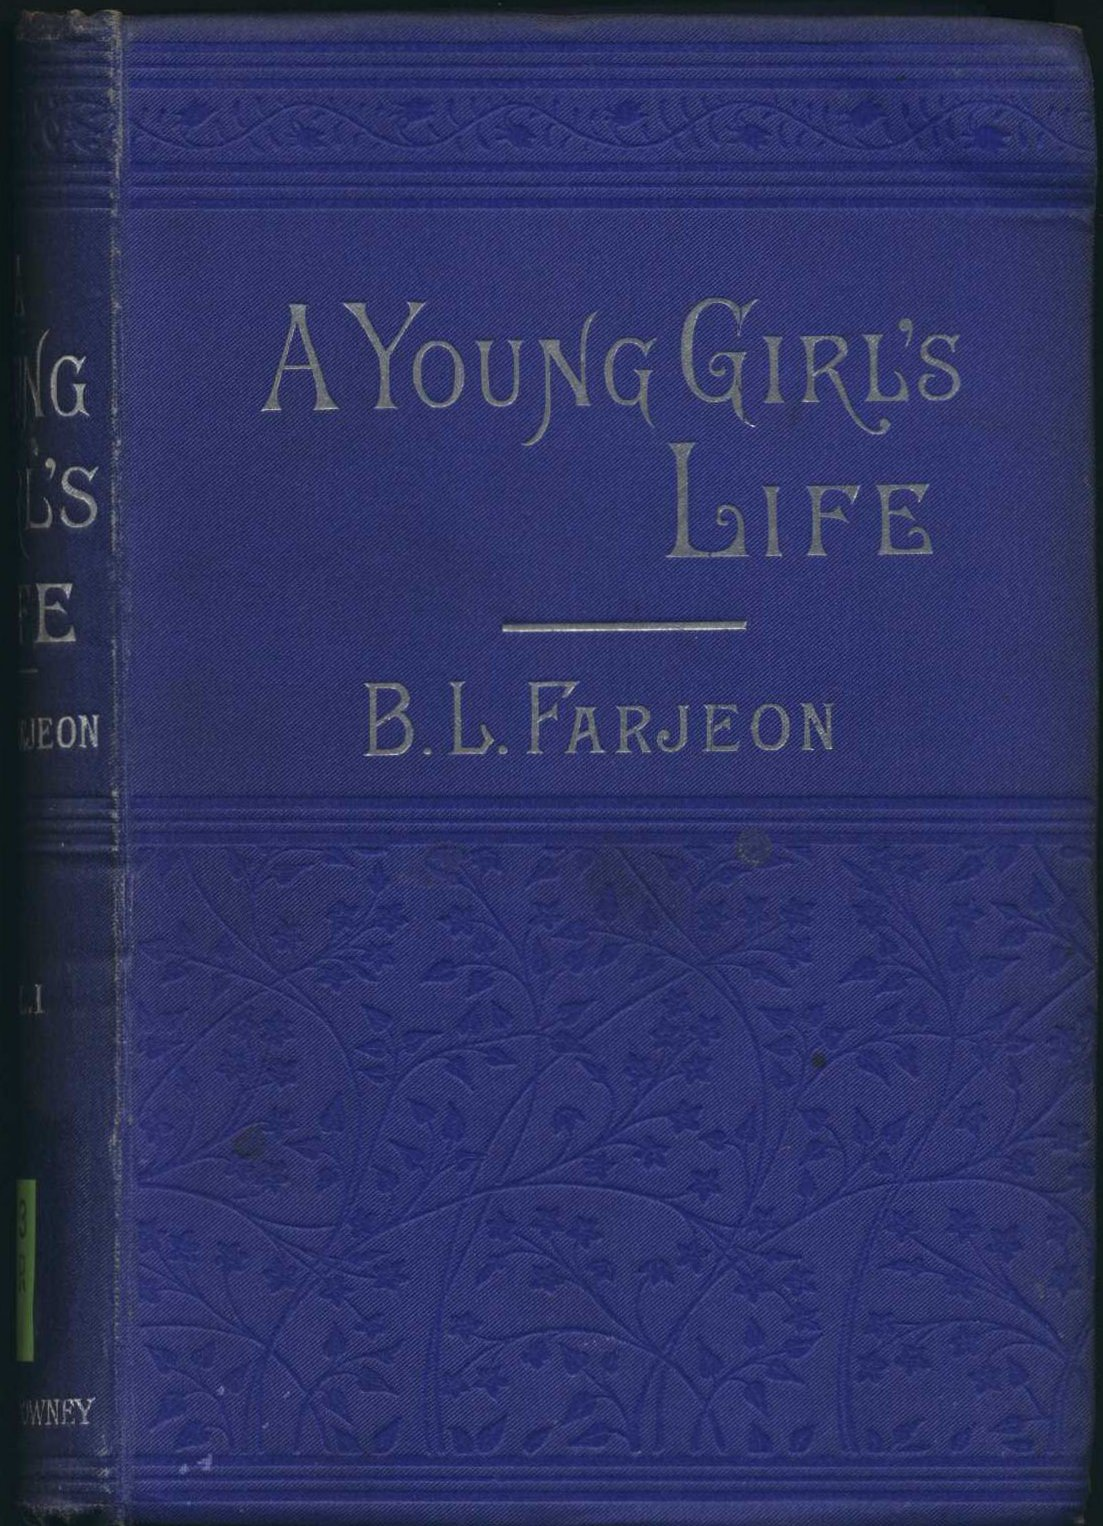 B.L. Farjeon. A young girl's life: a novel. London: Ward and Downey, 1889. Three volumes, Vol. 1 displayed.